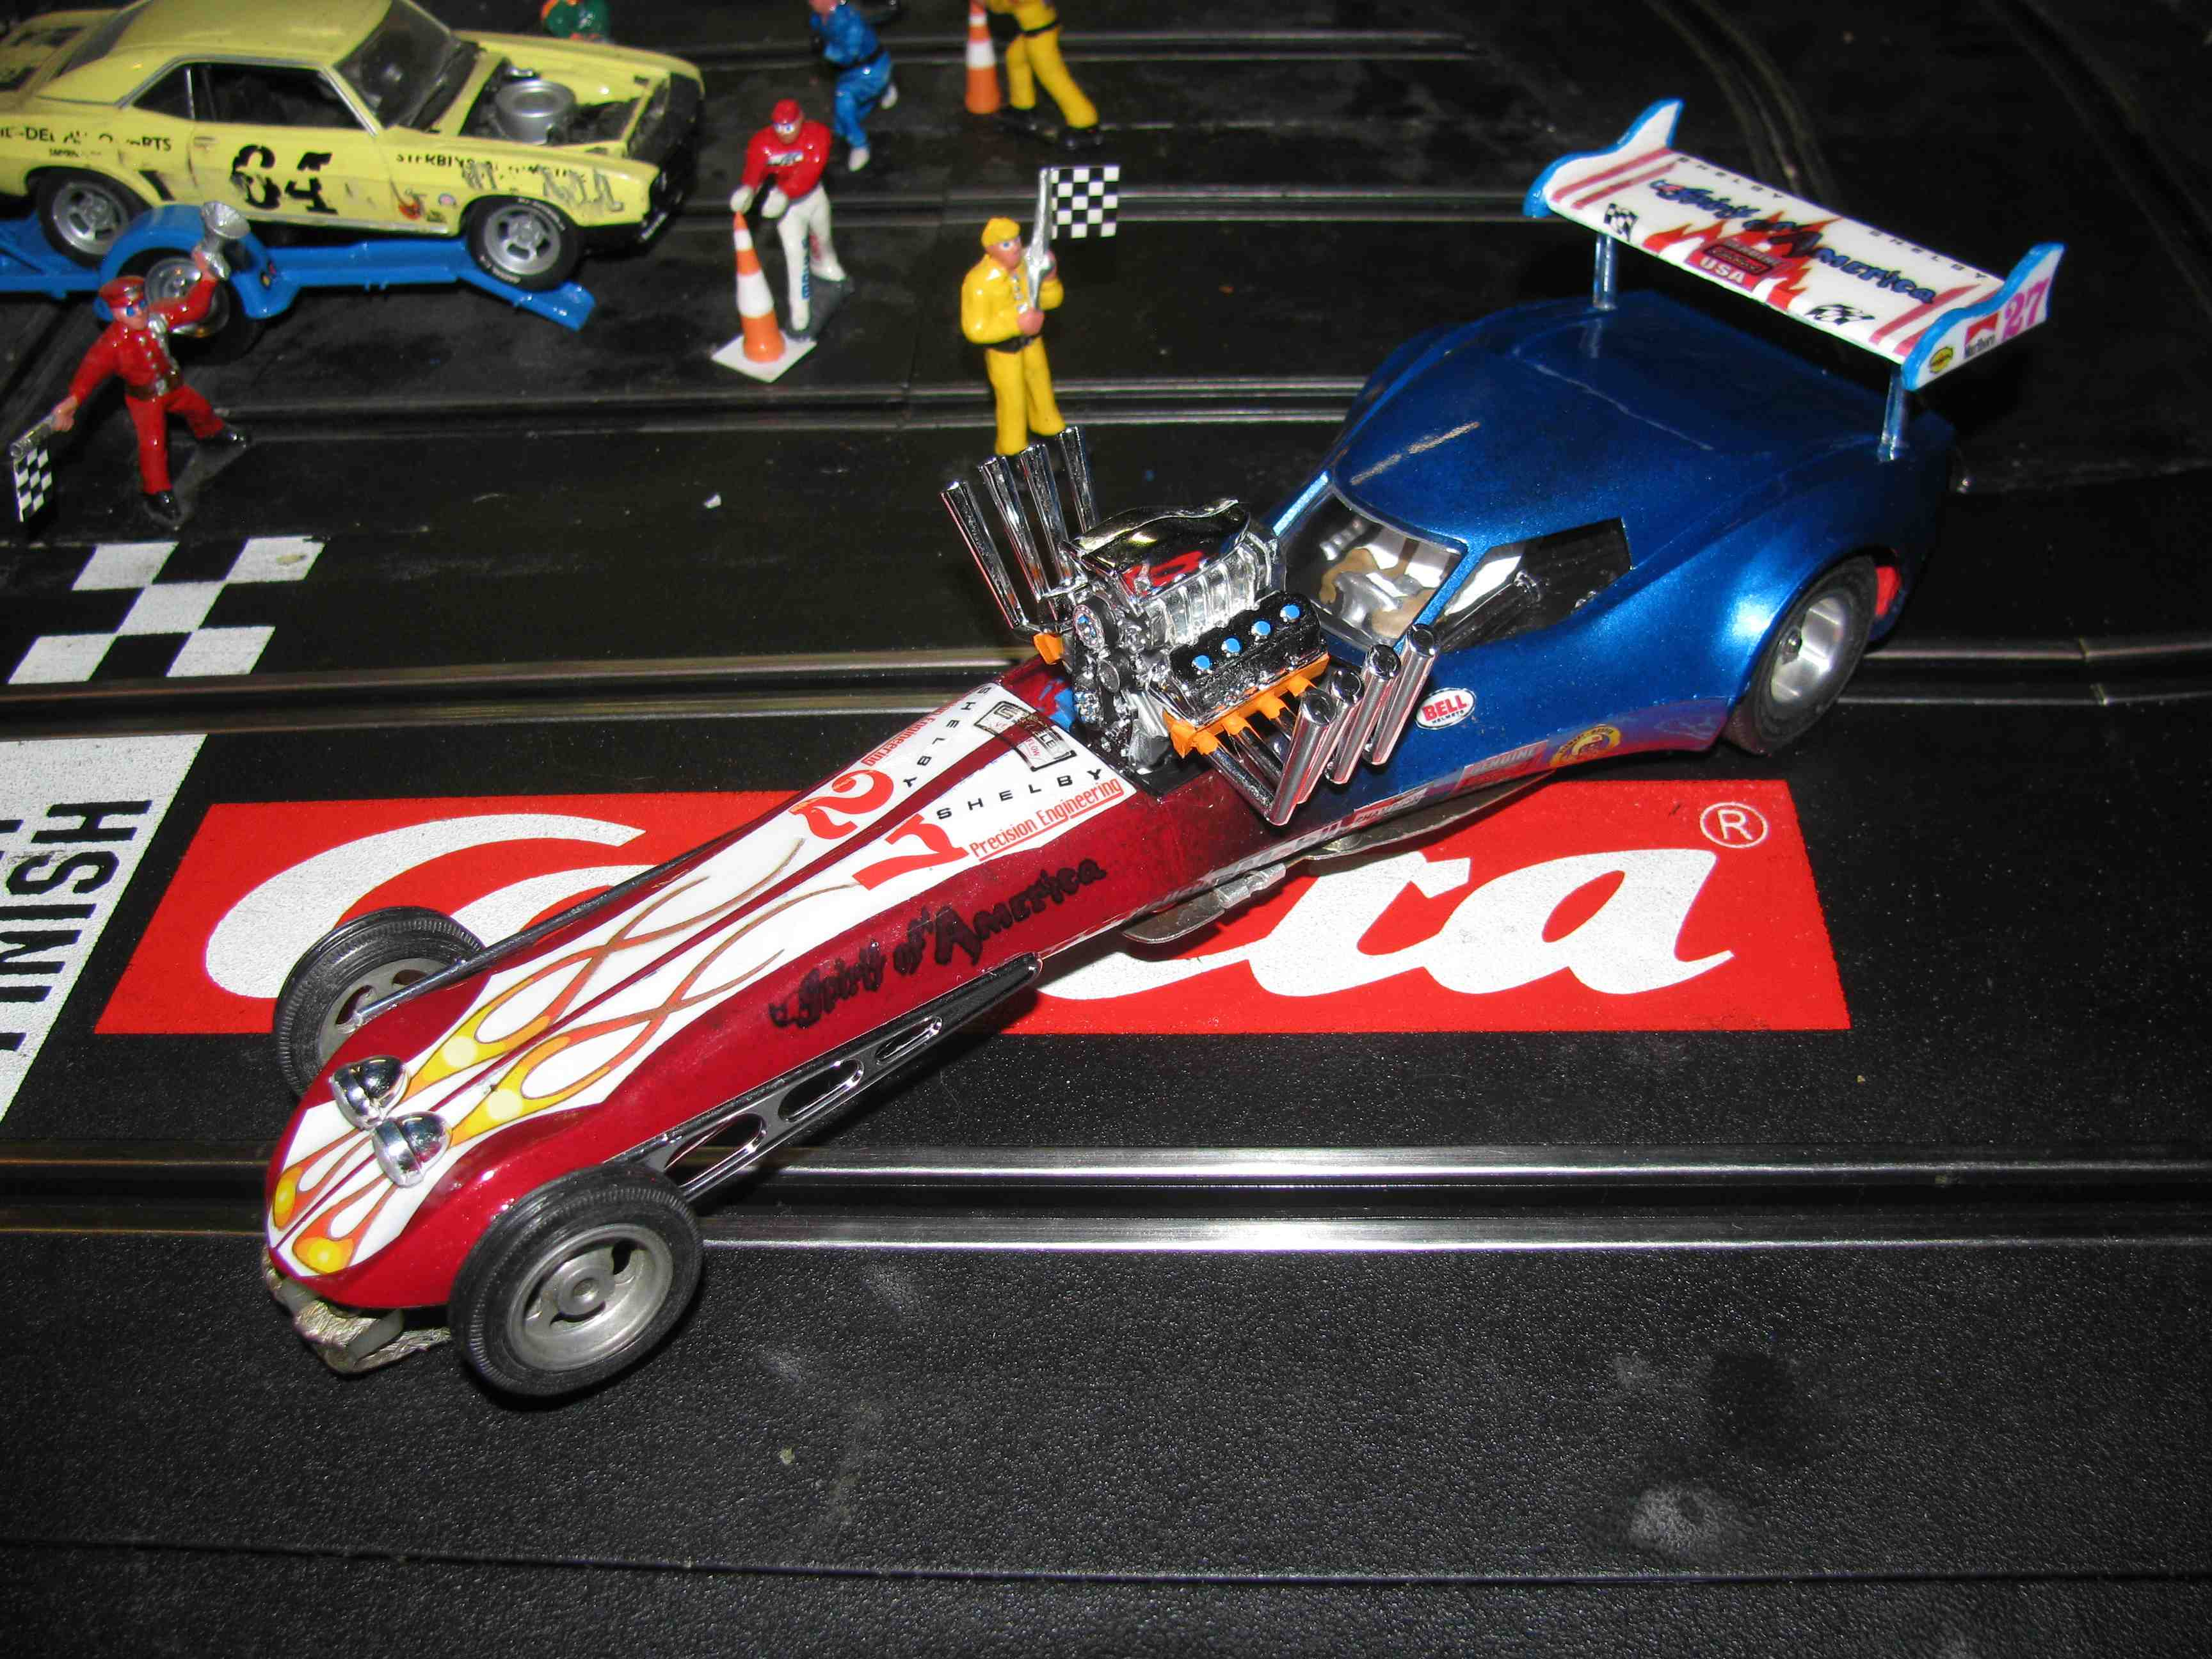 * SOLD * Monogram Ultimate Spirit of America Dragster Slot Car 1/24 Scale